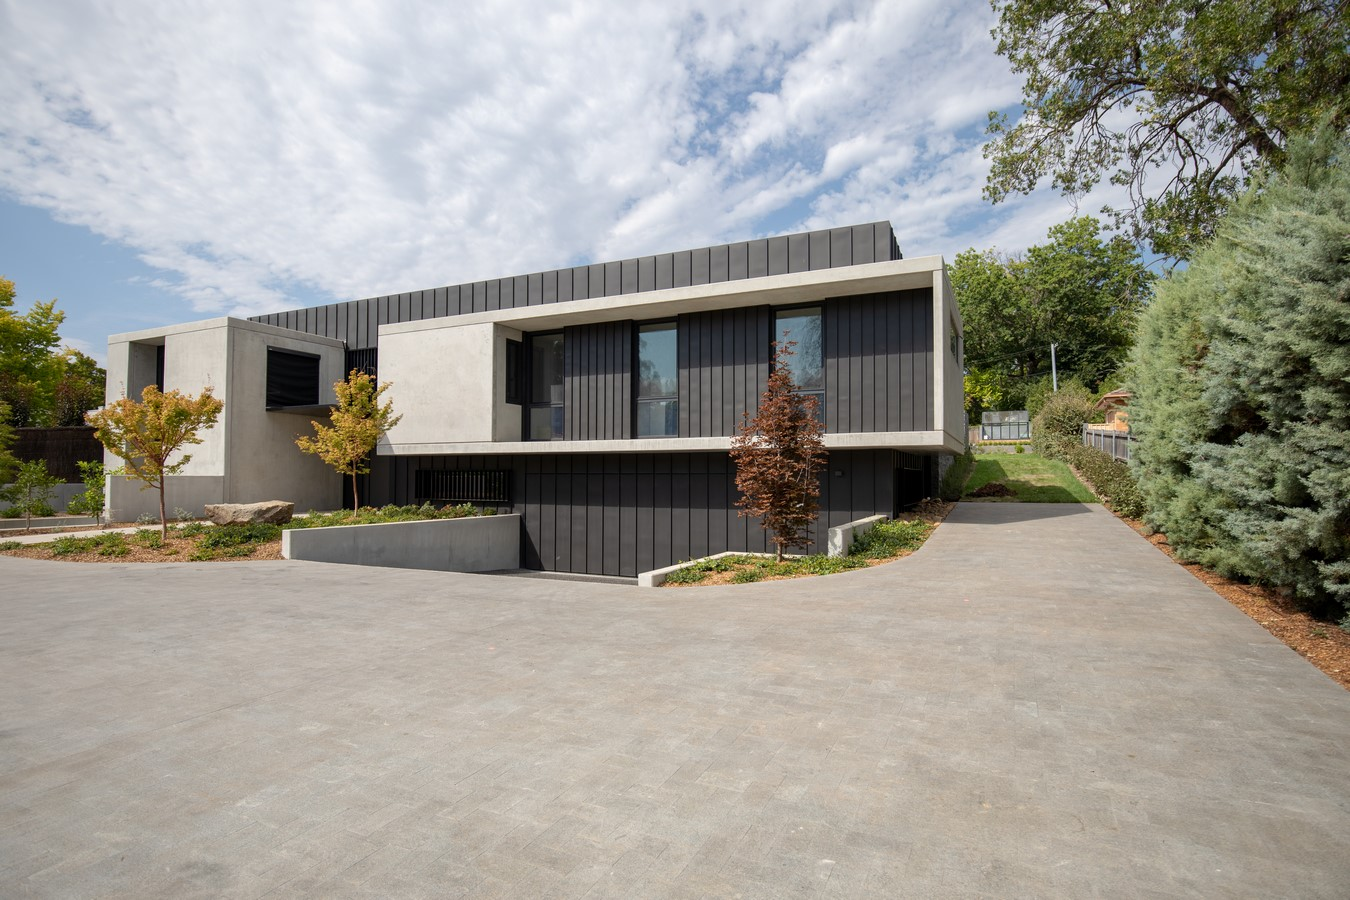 5087 Concrete House by Rob Henry Architects: Sheet 1